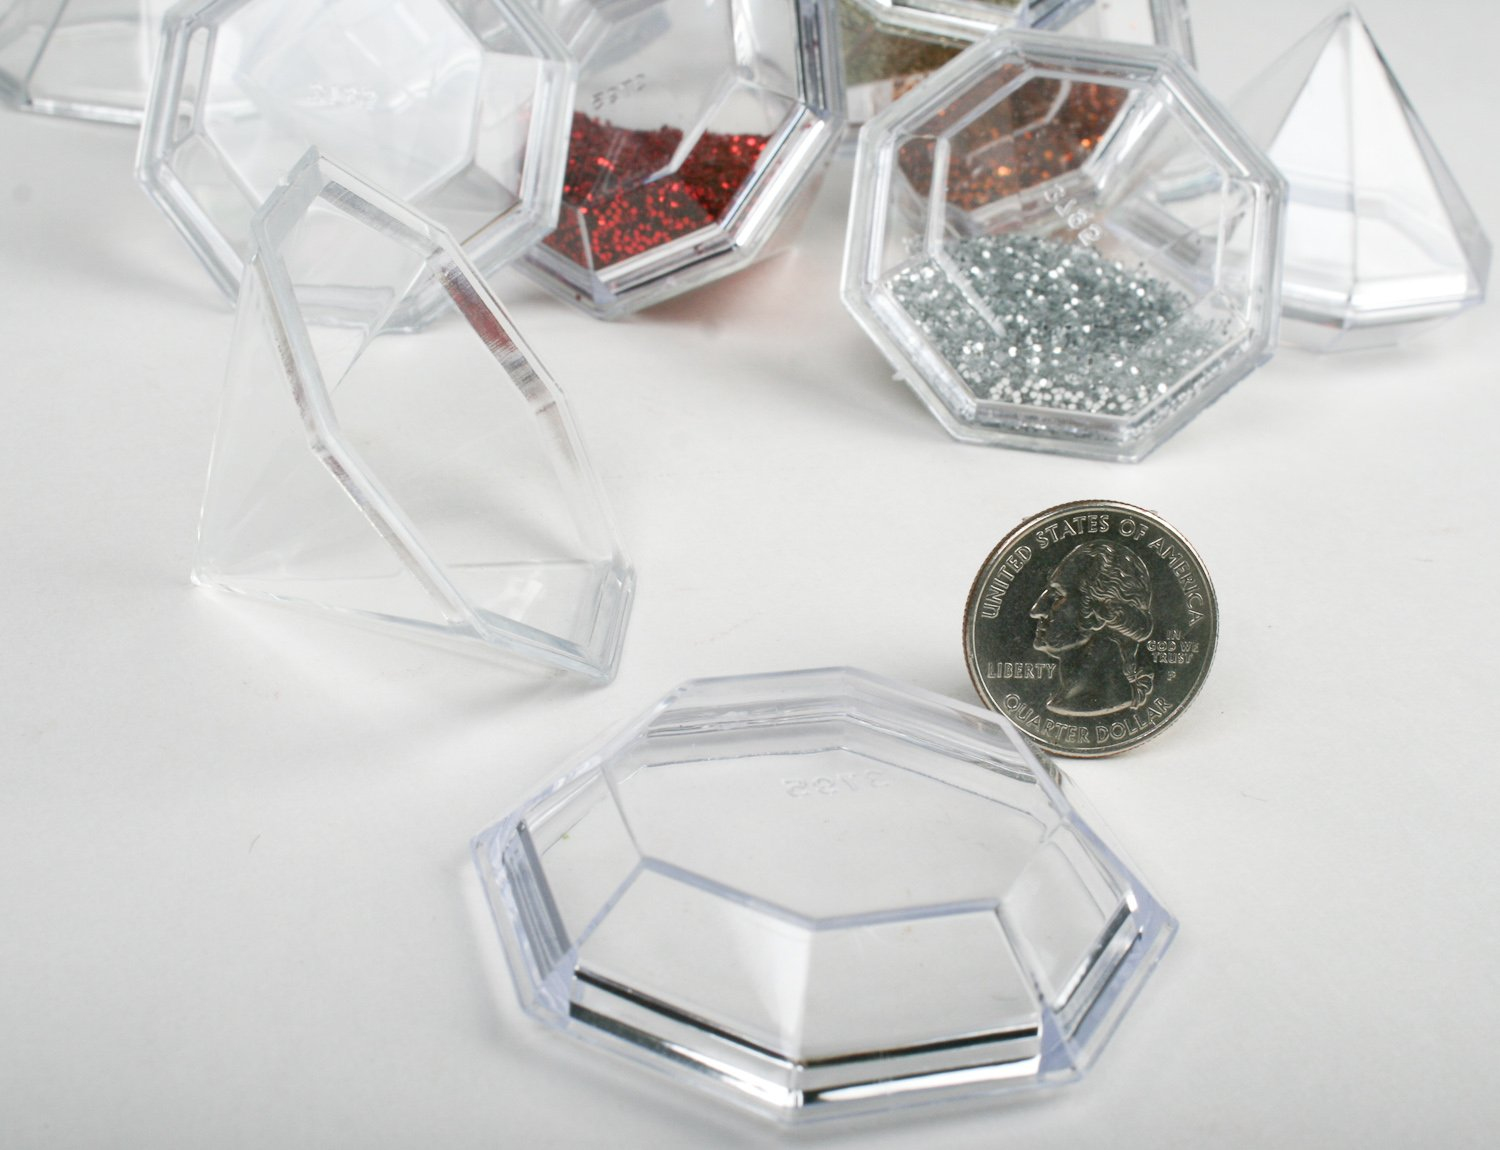 Amazon.com: Package of 12 Clear Acrylic Diamond Shaped Favor Boxes ...